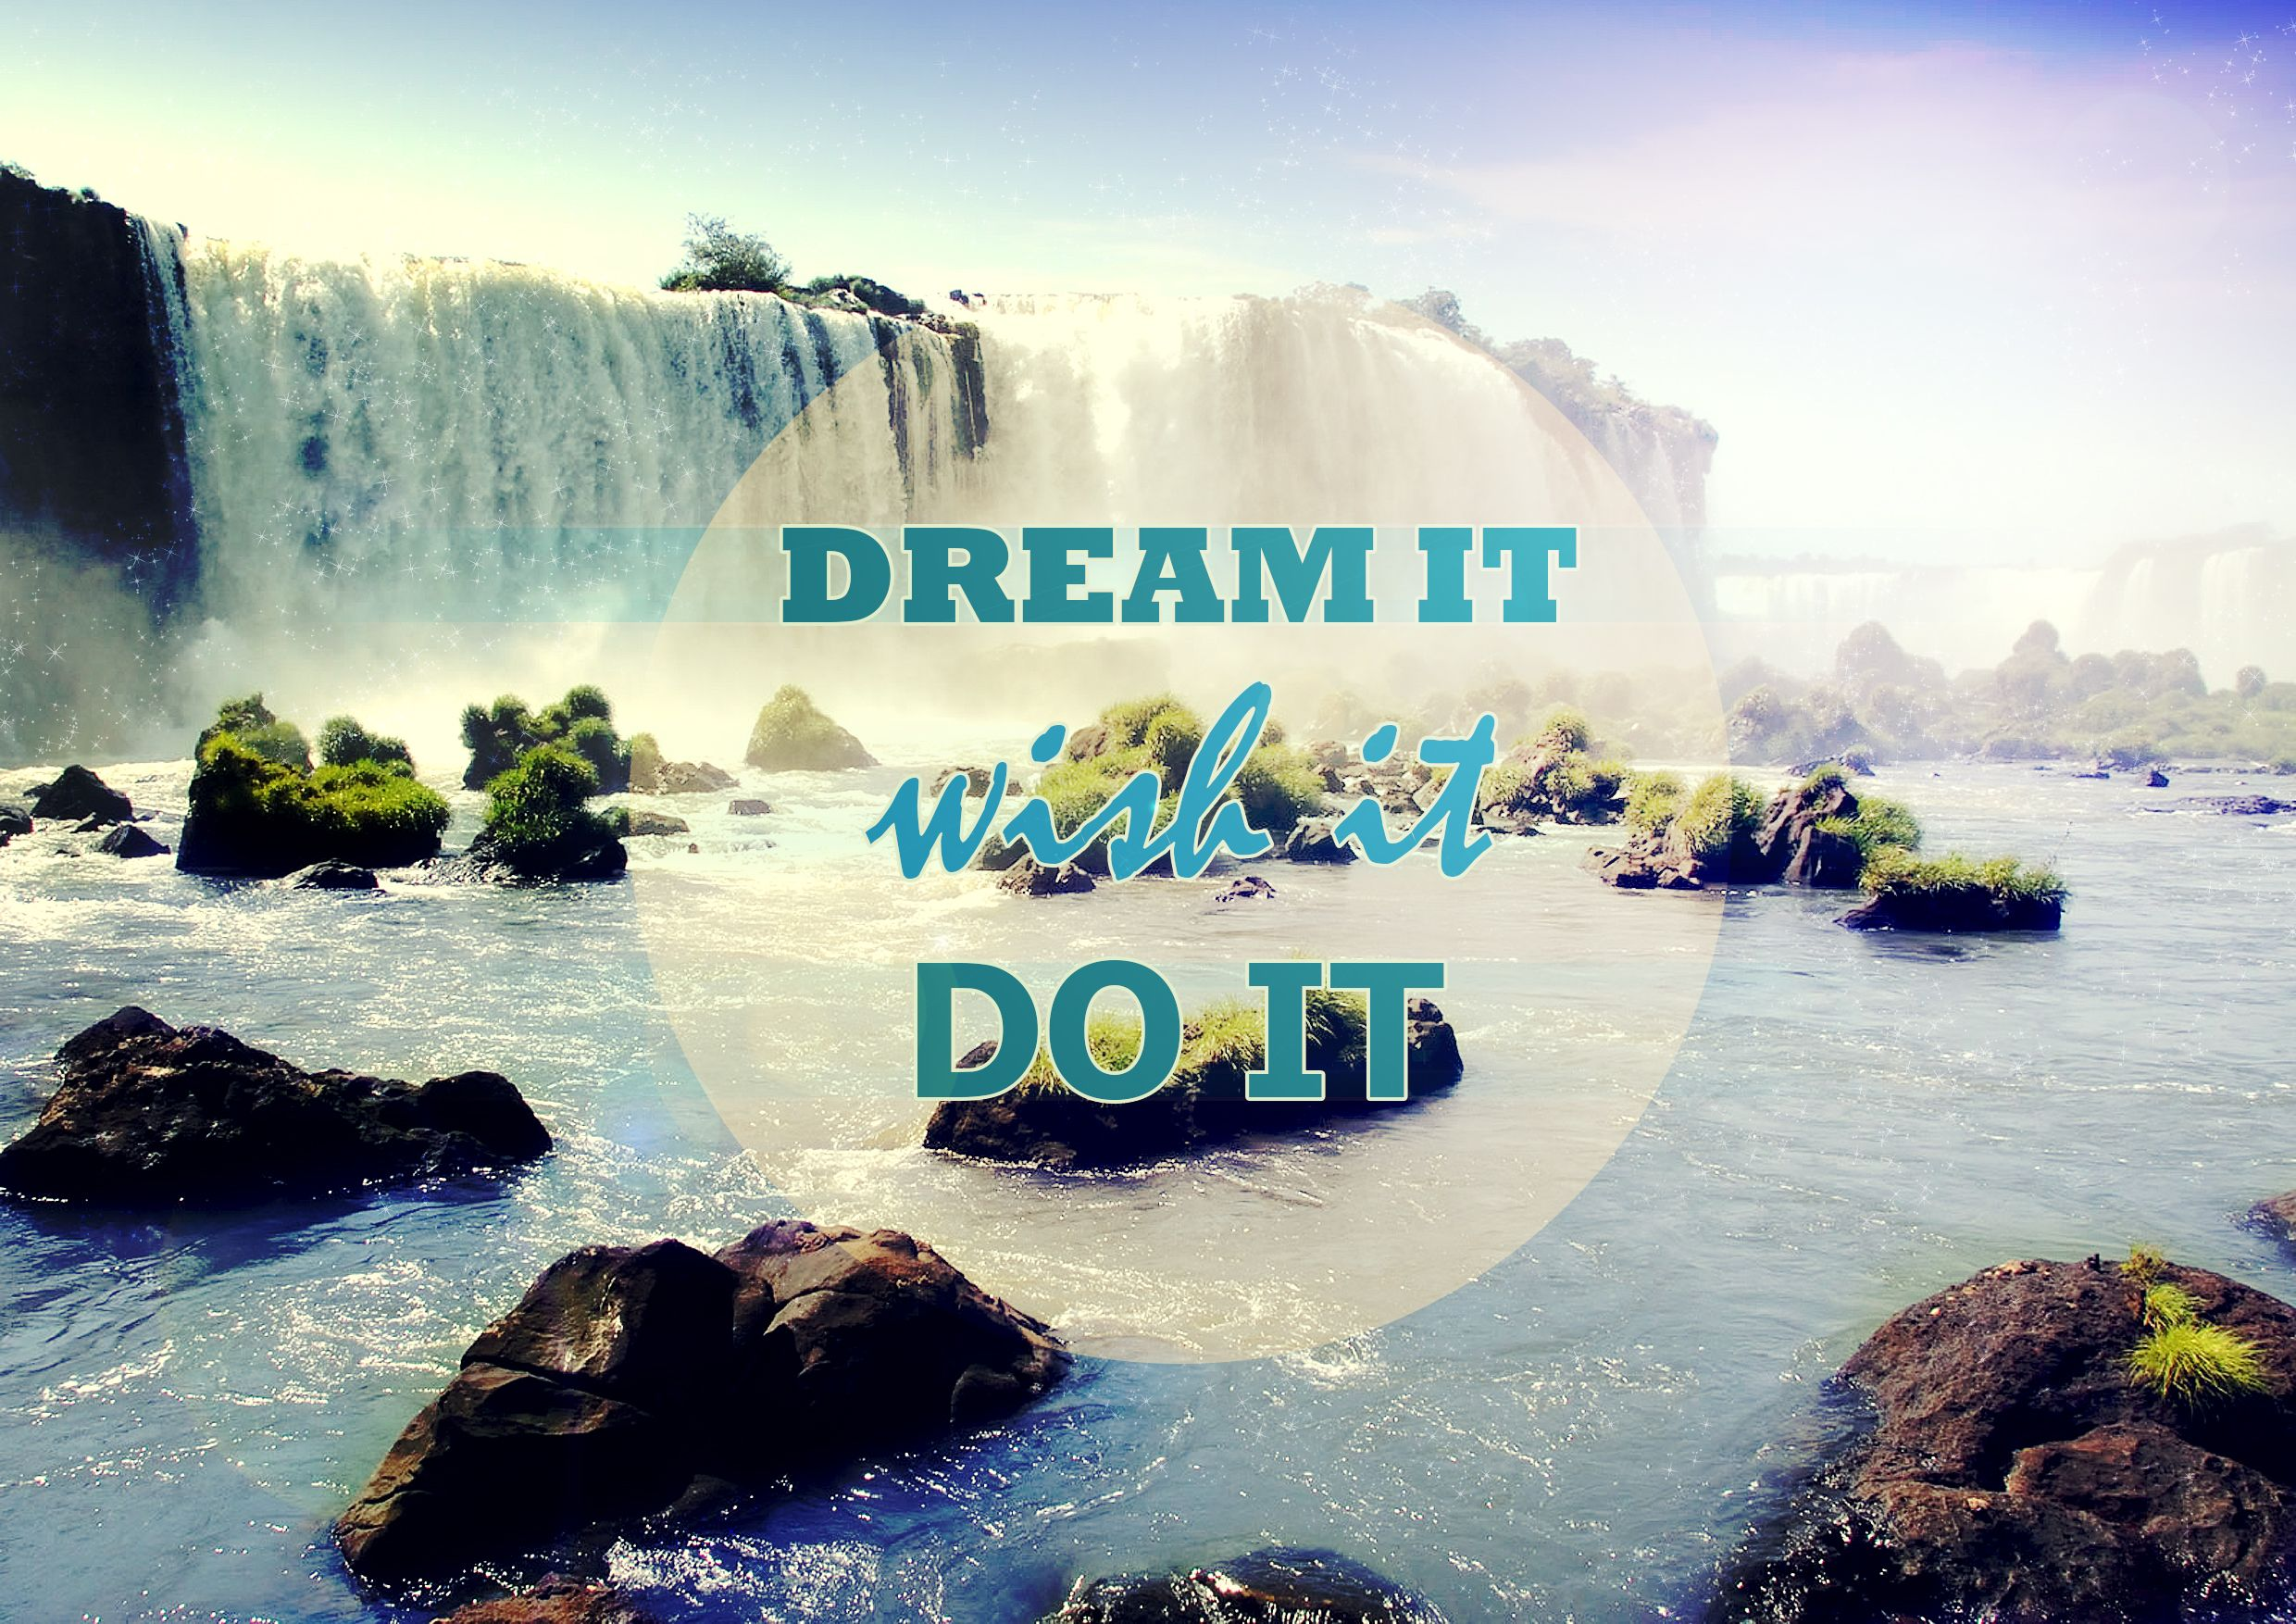 #dream it #Wish It  #Do It #poster #design #graphic #inspirational